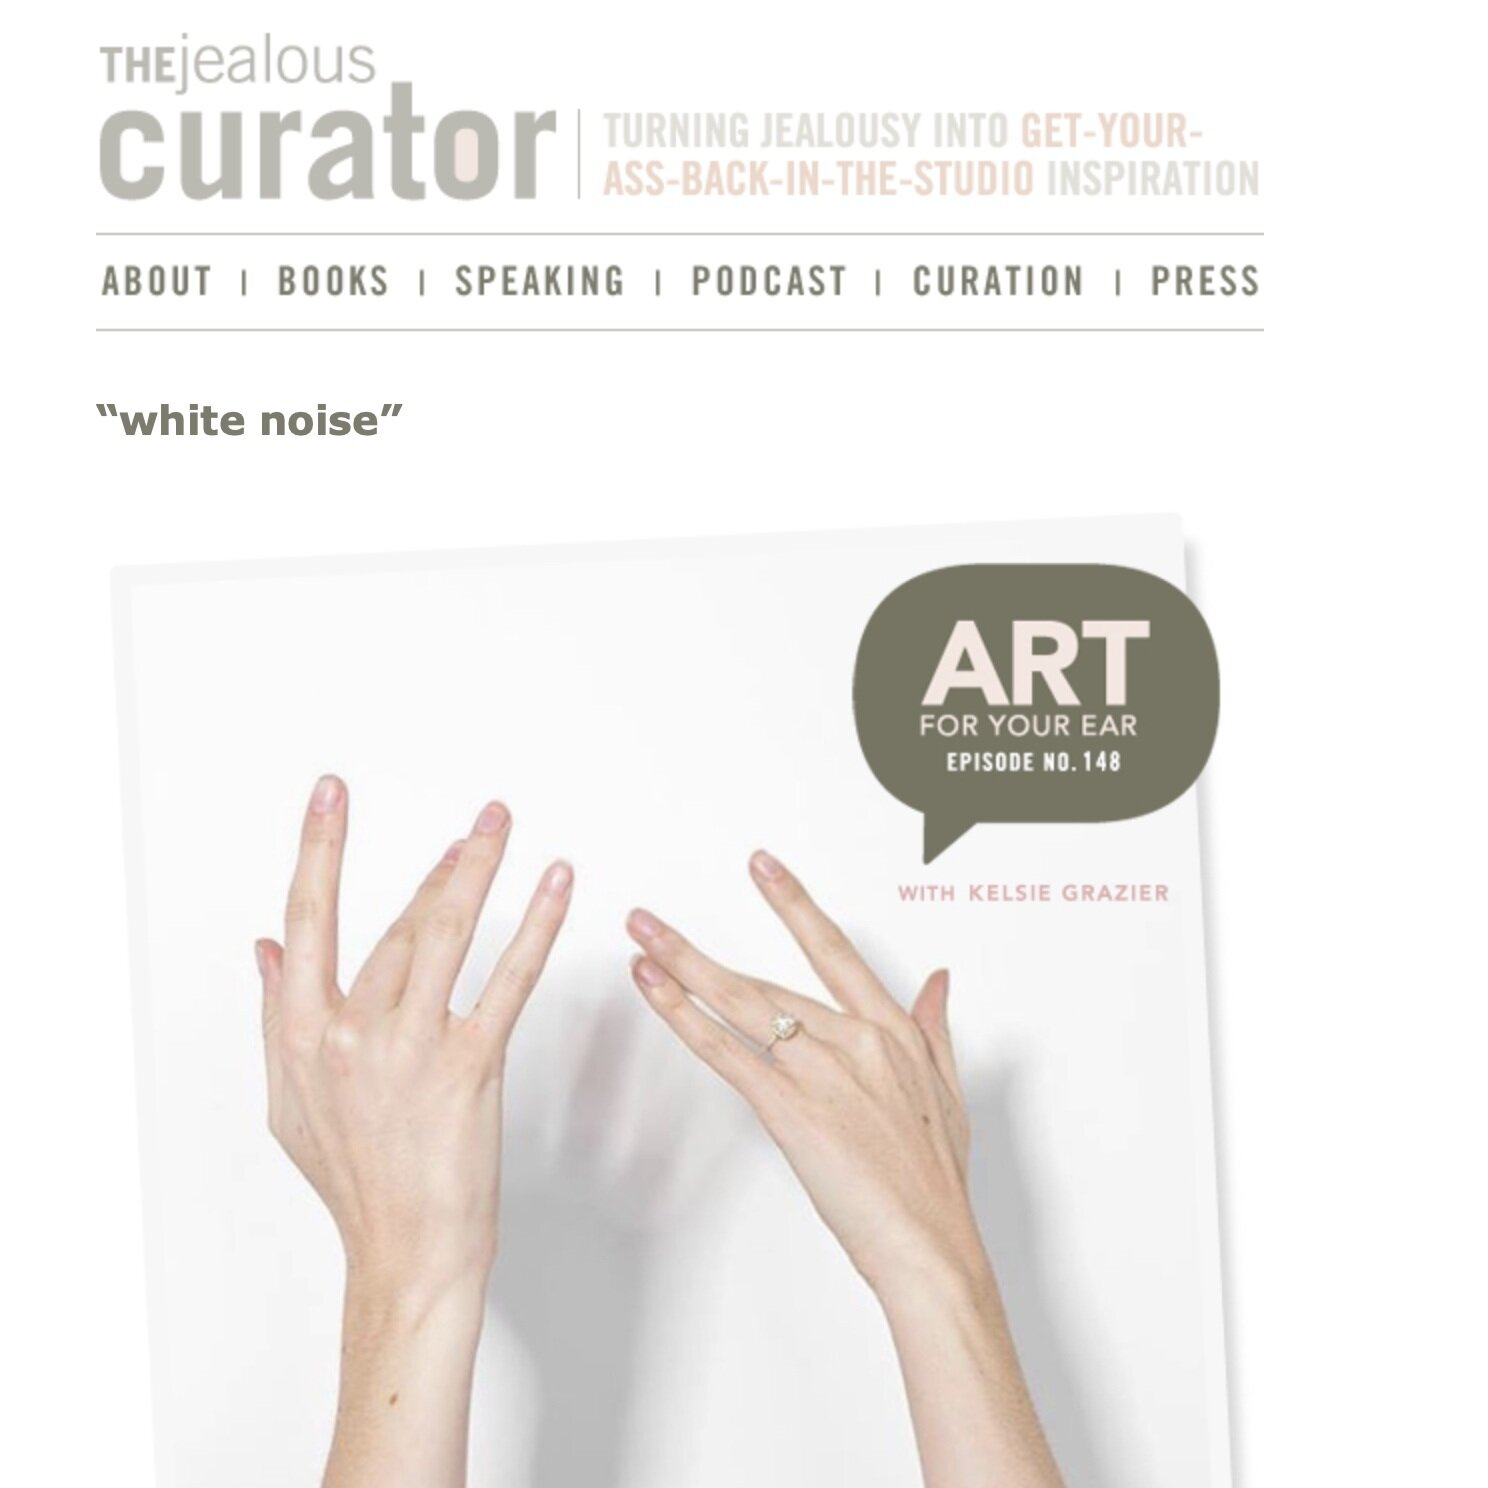 The Jealous Curator - Art for Your Ear Podcast